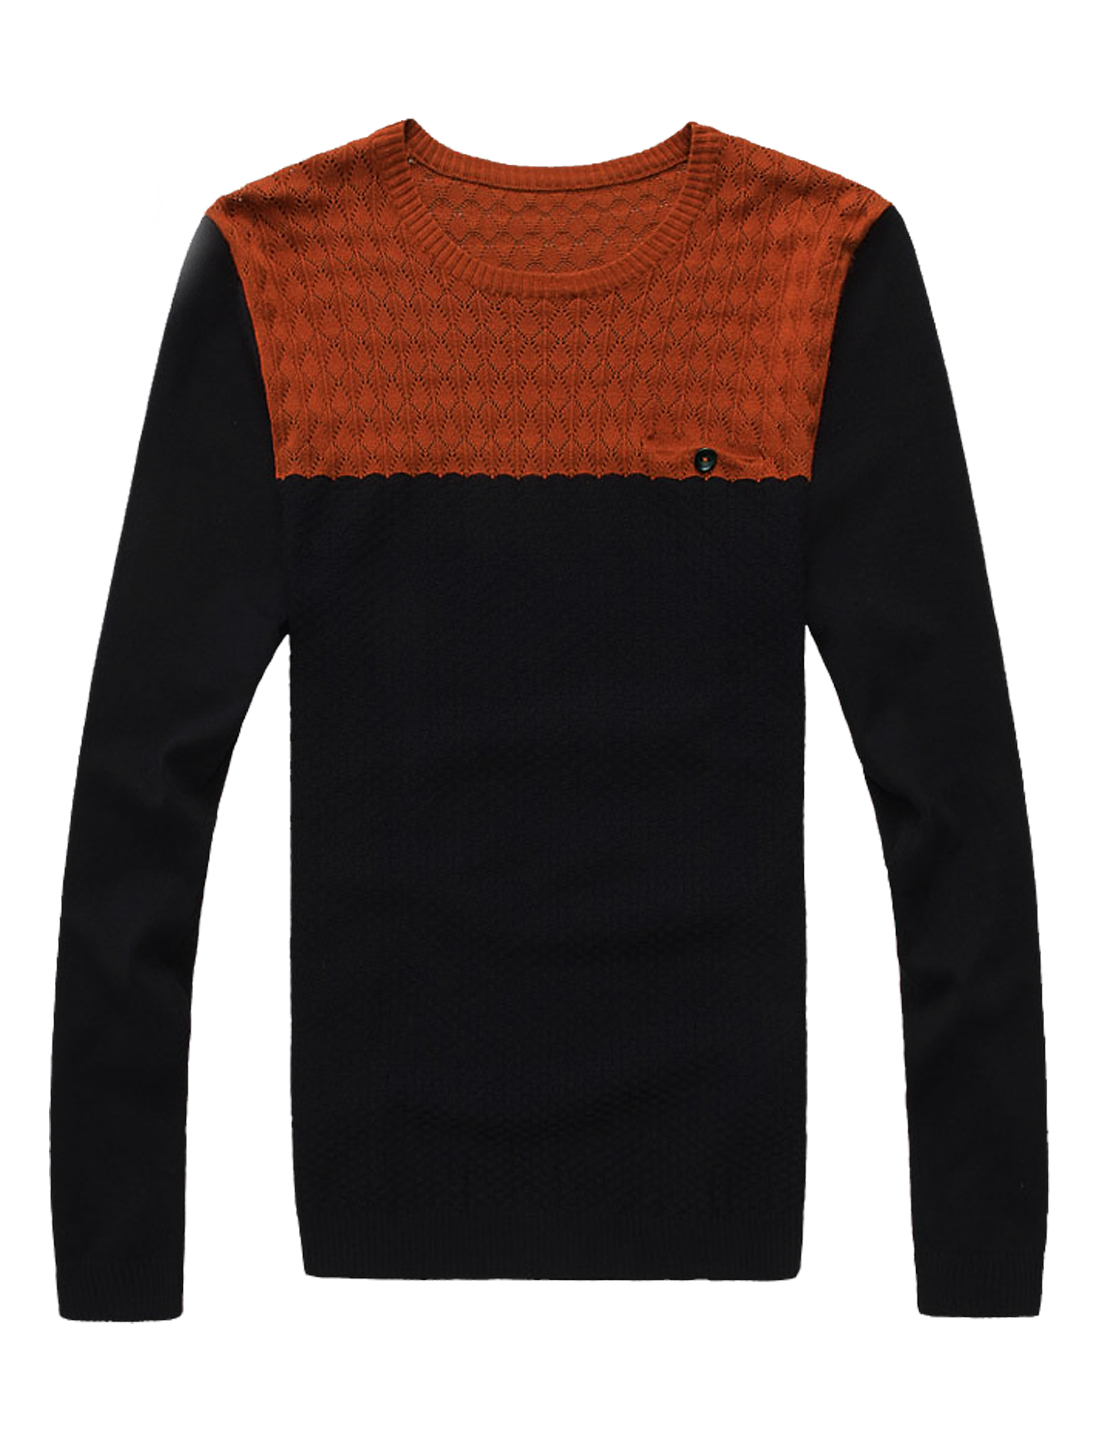 Men Argyle Design Contrast Color Long Sleeves Pullover Sweater Orange Black M